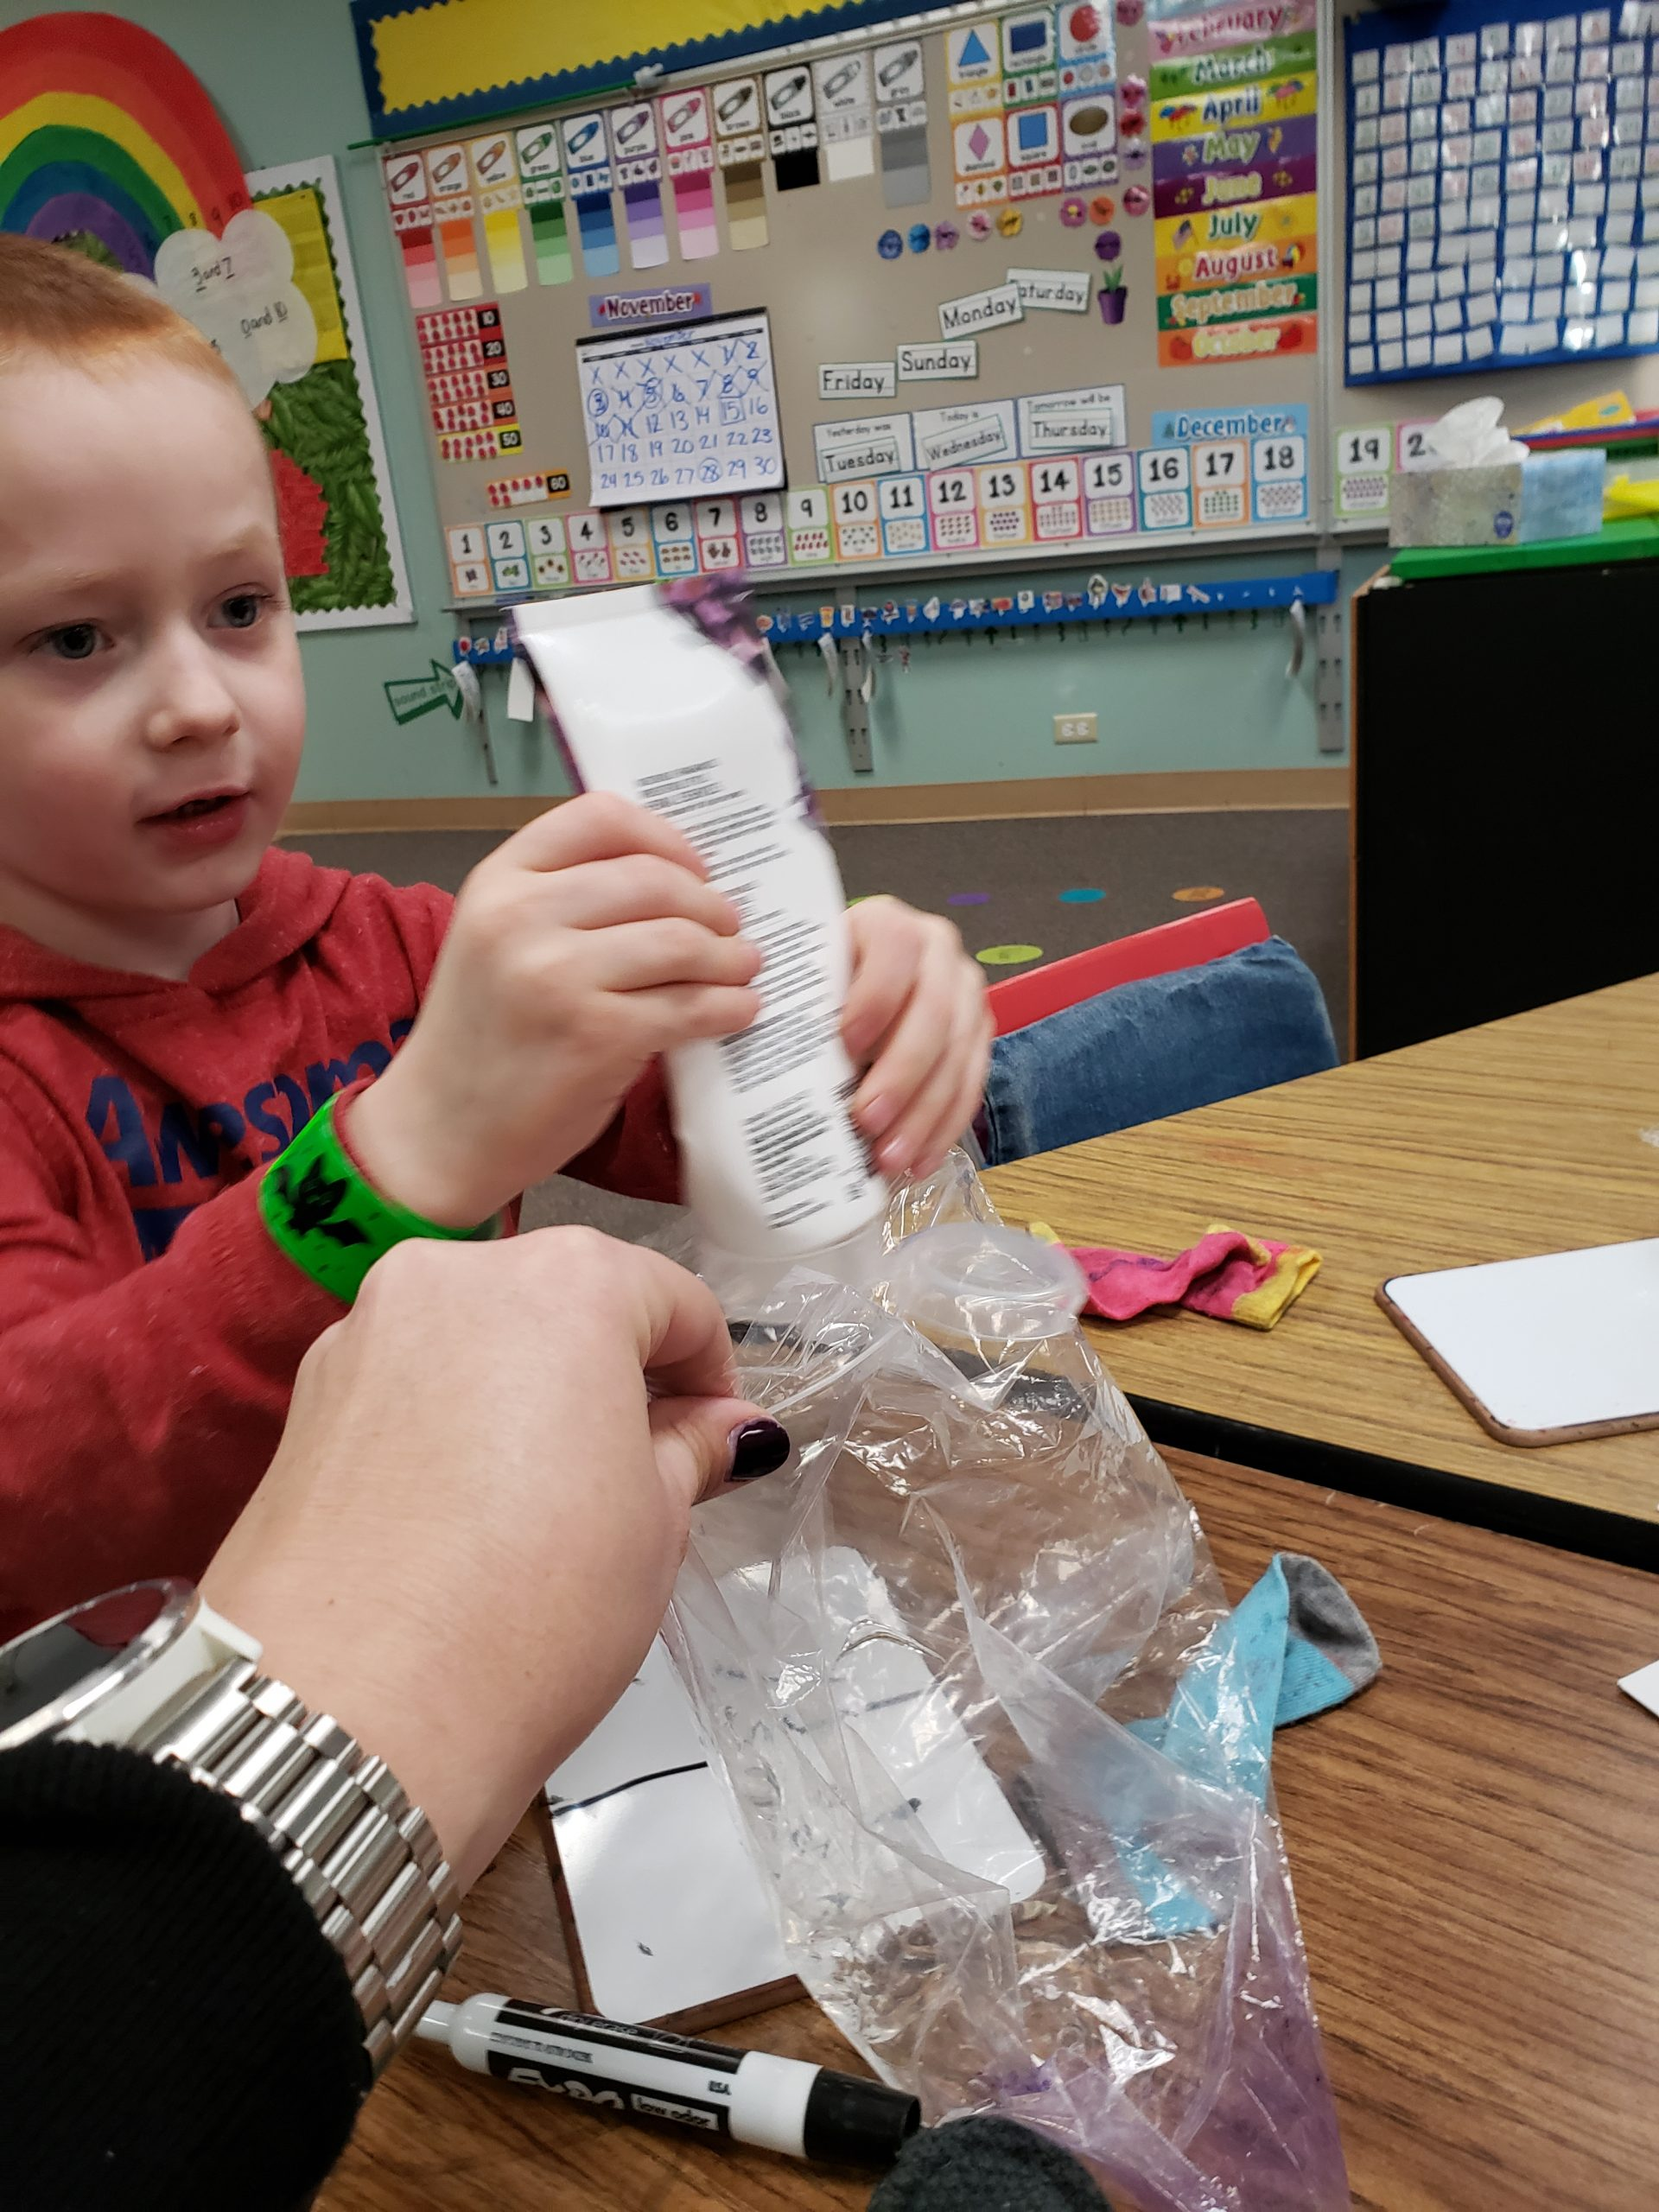 A young boy is squeezing hair gel from a tube into a ziploc bag with the help of an adult.